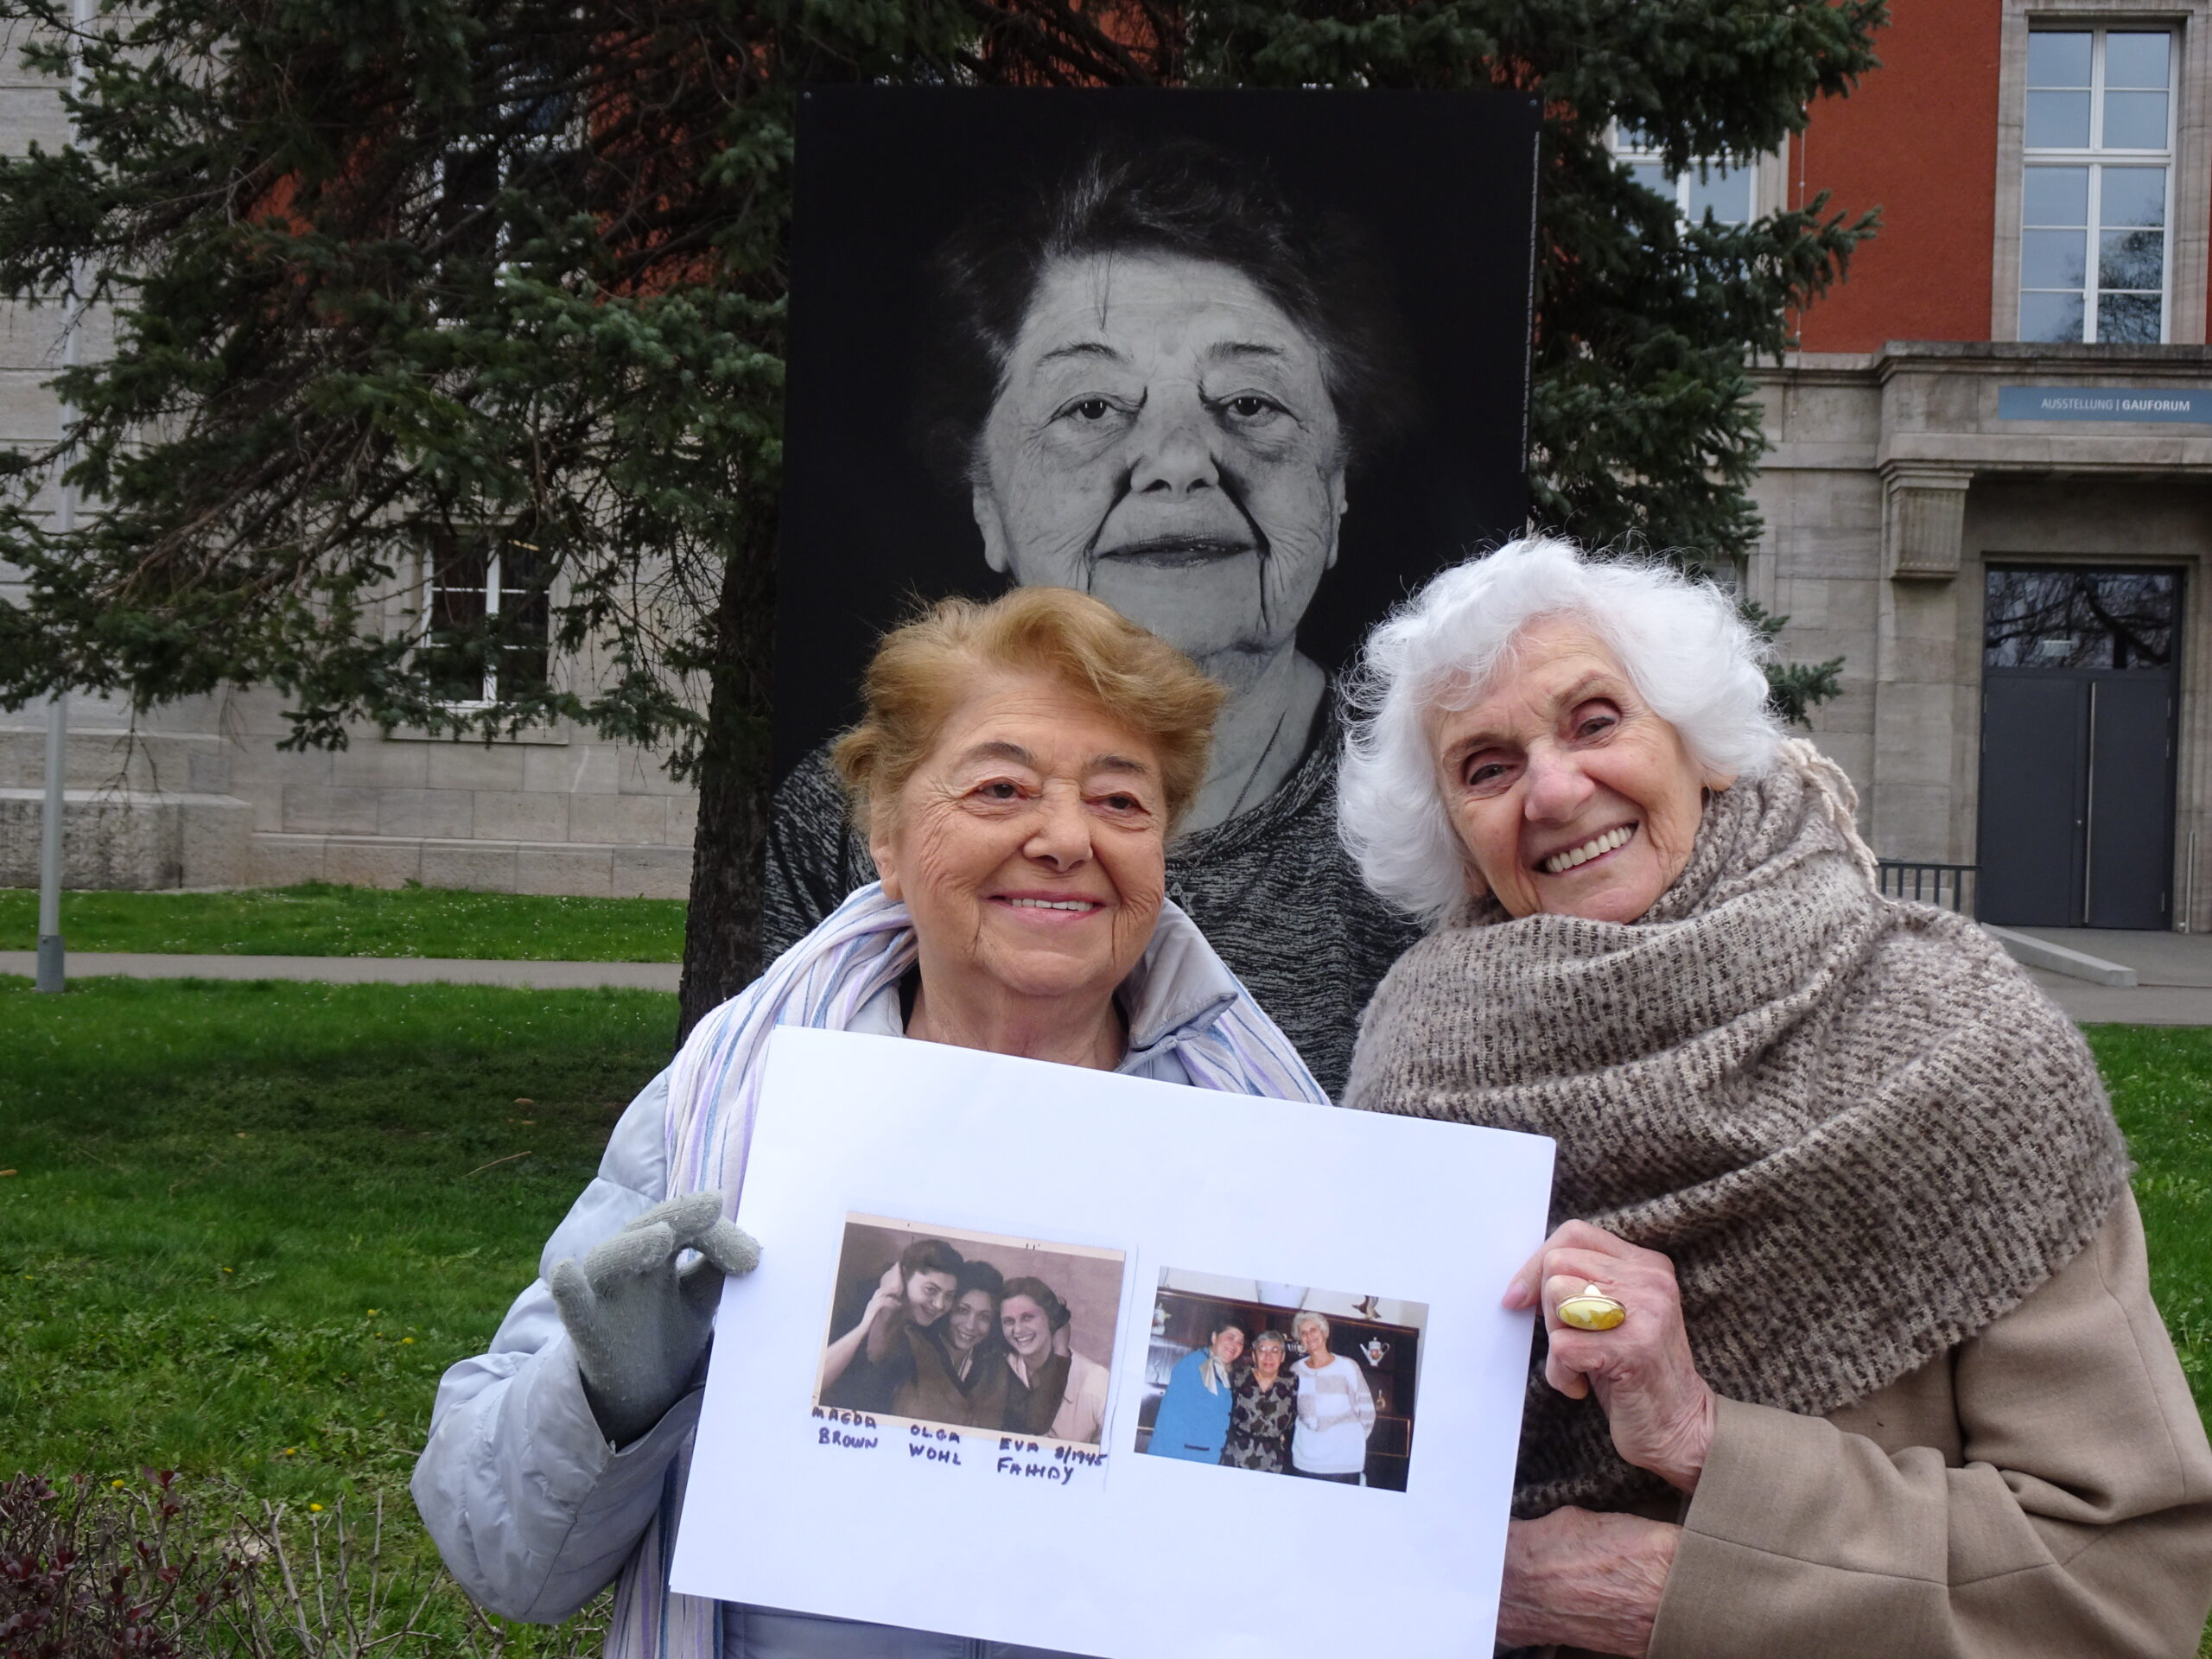 Magda Brown and Eva Fahidi Pusztai pose in front of Magda's portrait in Weimar holding photos of them from after the war and from the 1990s